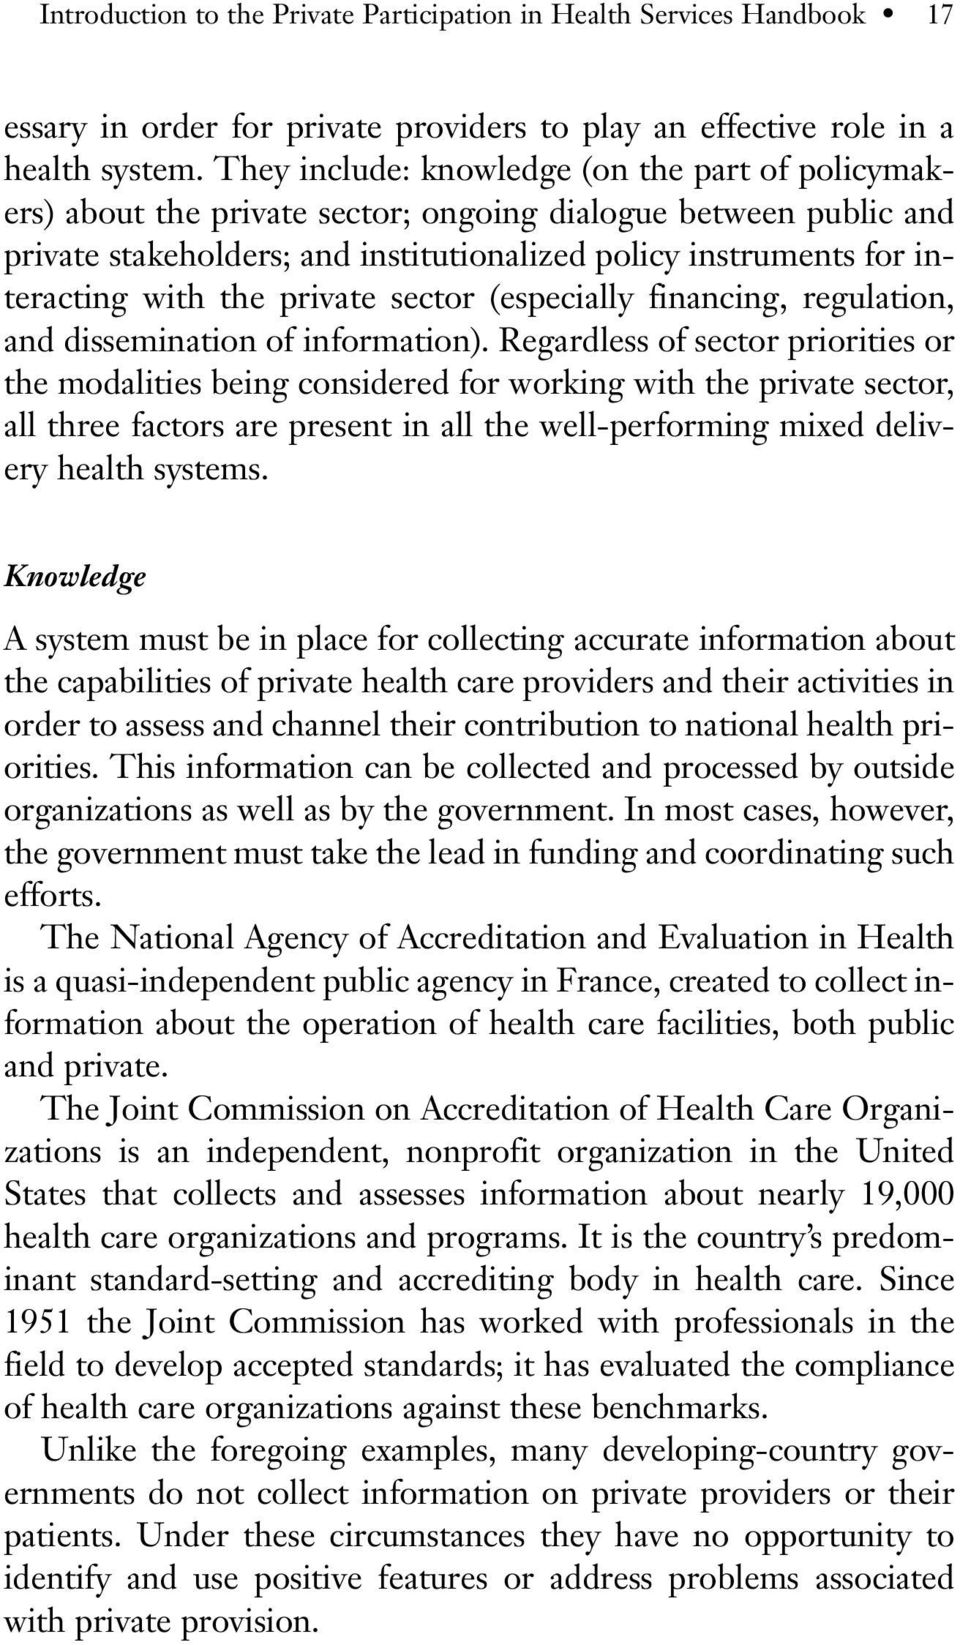 the private sector (especially financing, regulation, and dissemination of information).